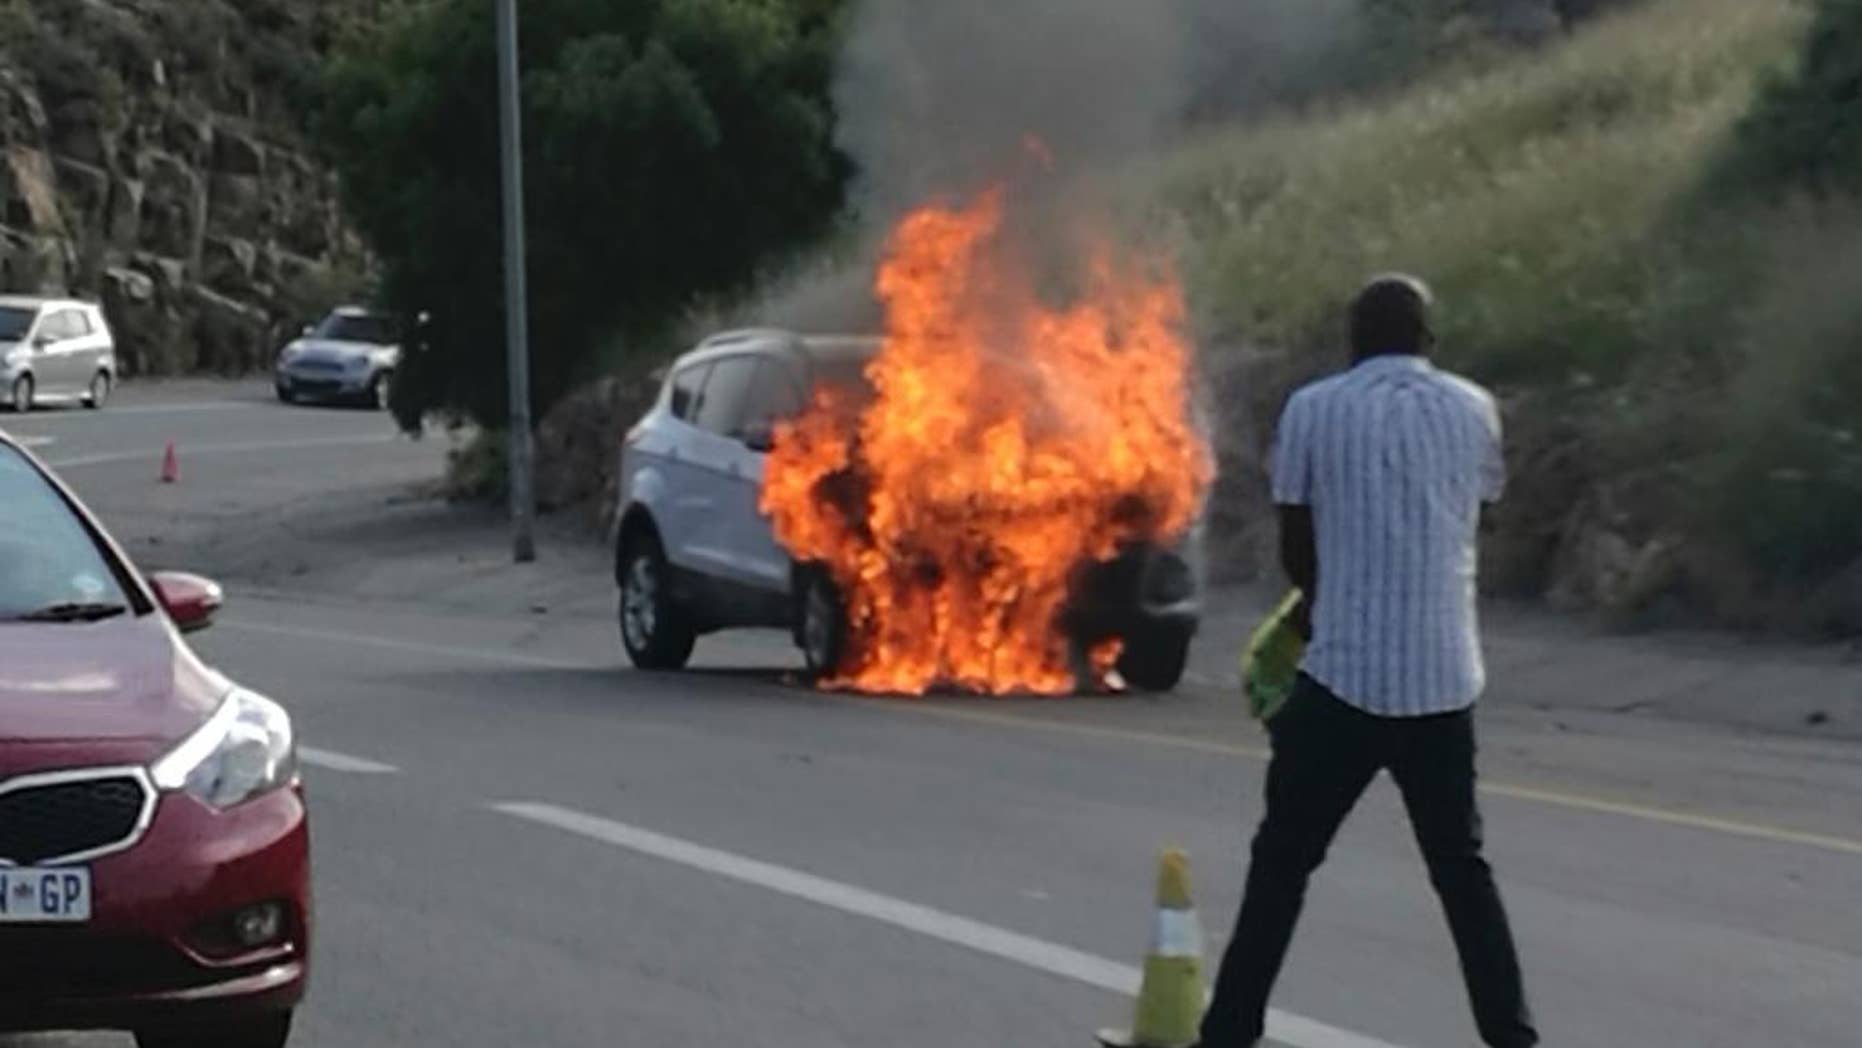 In this photo taken Thursday, Jan. 12, 2017 the 2013 Ford Kuga owned by Warren Krog burns out in Alberton JohannesburgThe South African unit of the Ford Motor Company says it is recalling 4,556 Kuga vehicles following several dozen reports of the car catching fire. Jeff Nemeth, Ford's regional chief executive, said Monday Jan. 16 2017, that 1.6-liter Kugas made between December 2012 and February 2014 must be taken to a Ford dealer as soon as possible. (AP Photo/Warren Krog)